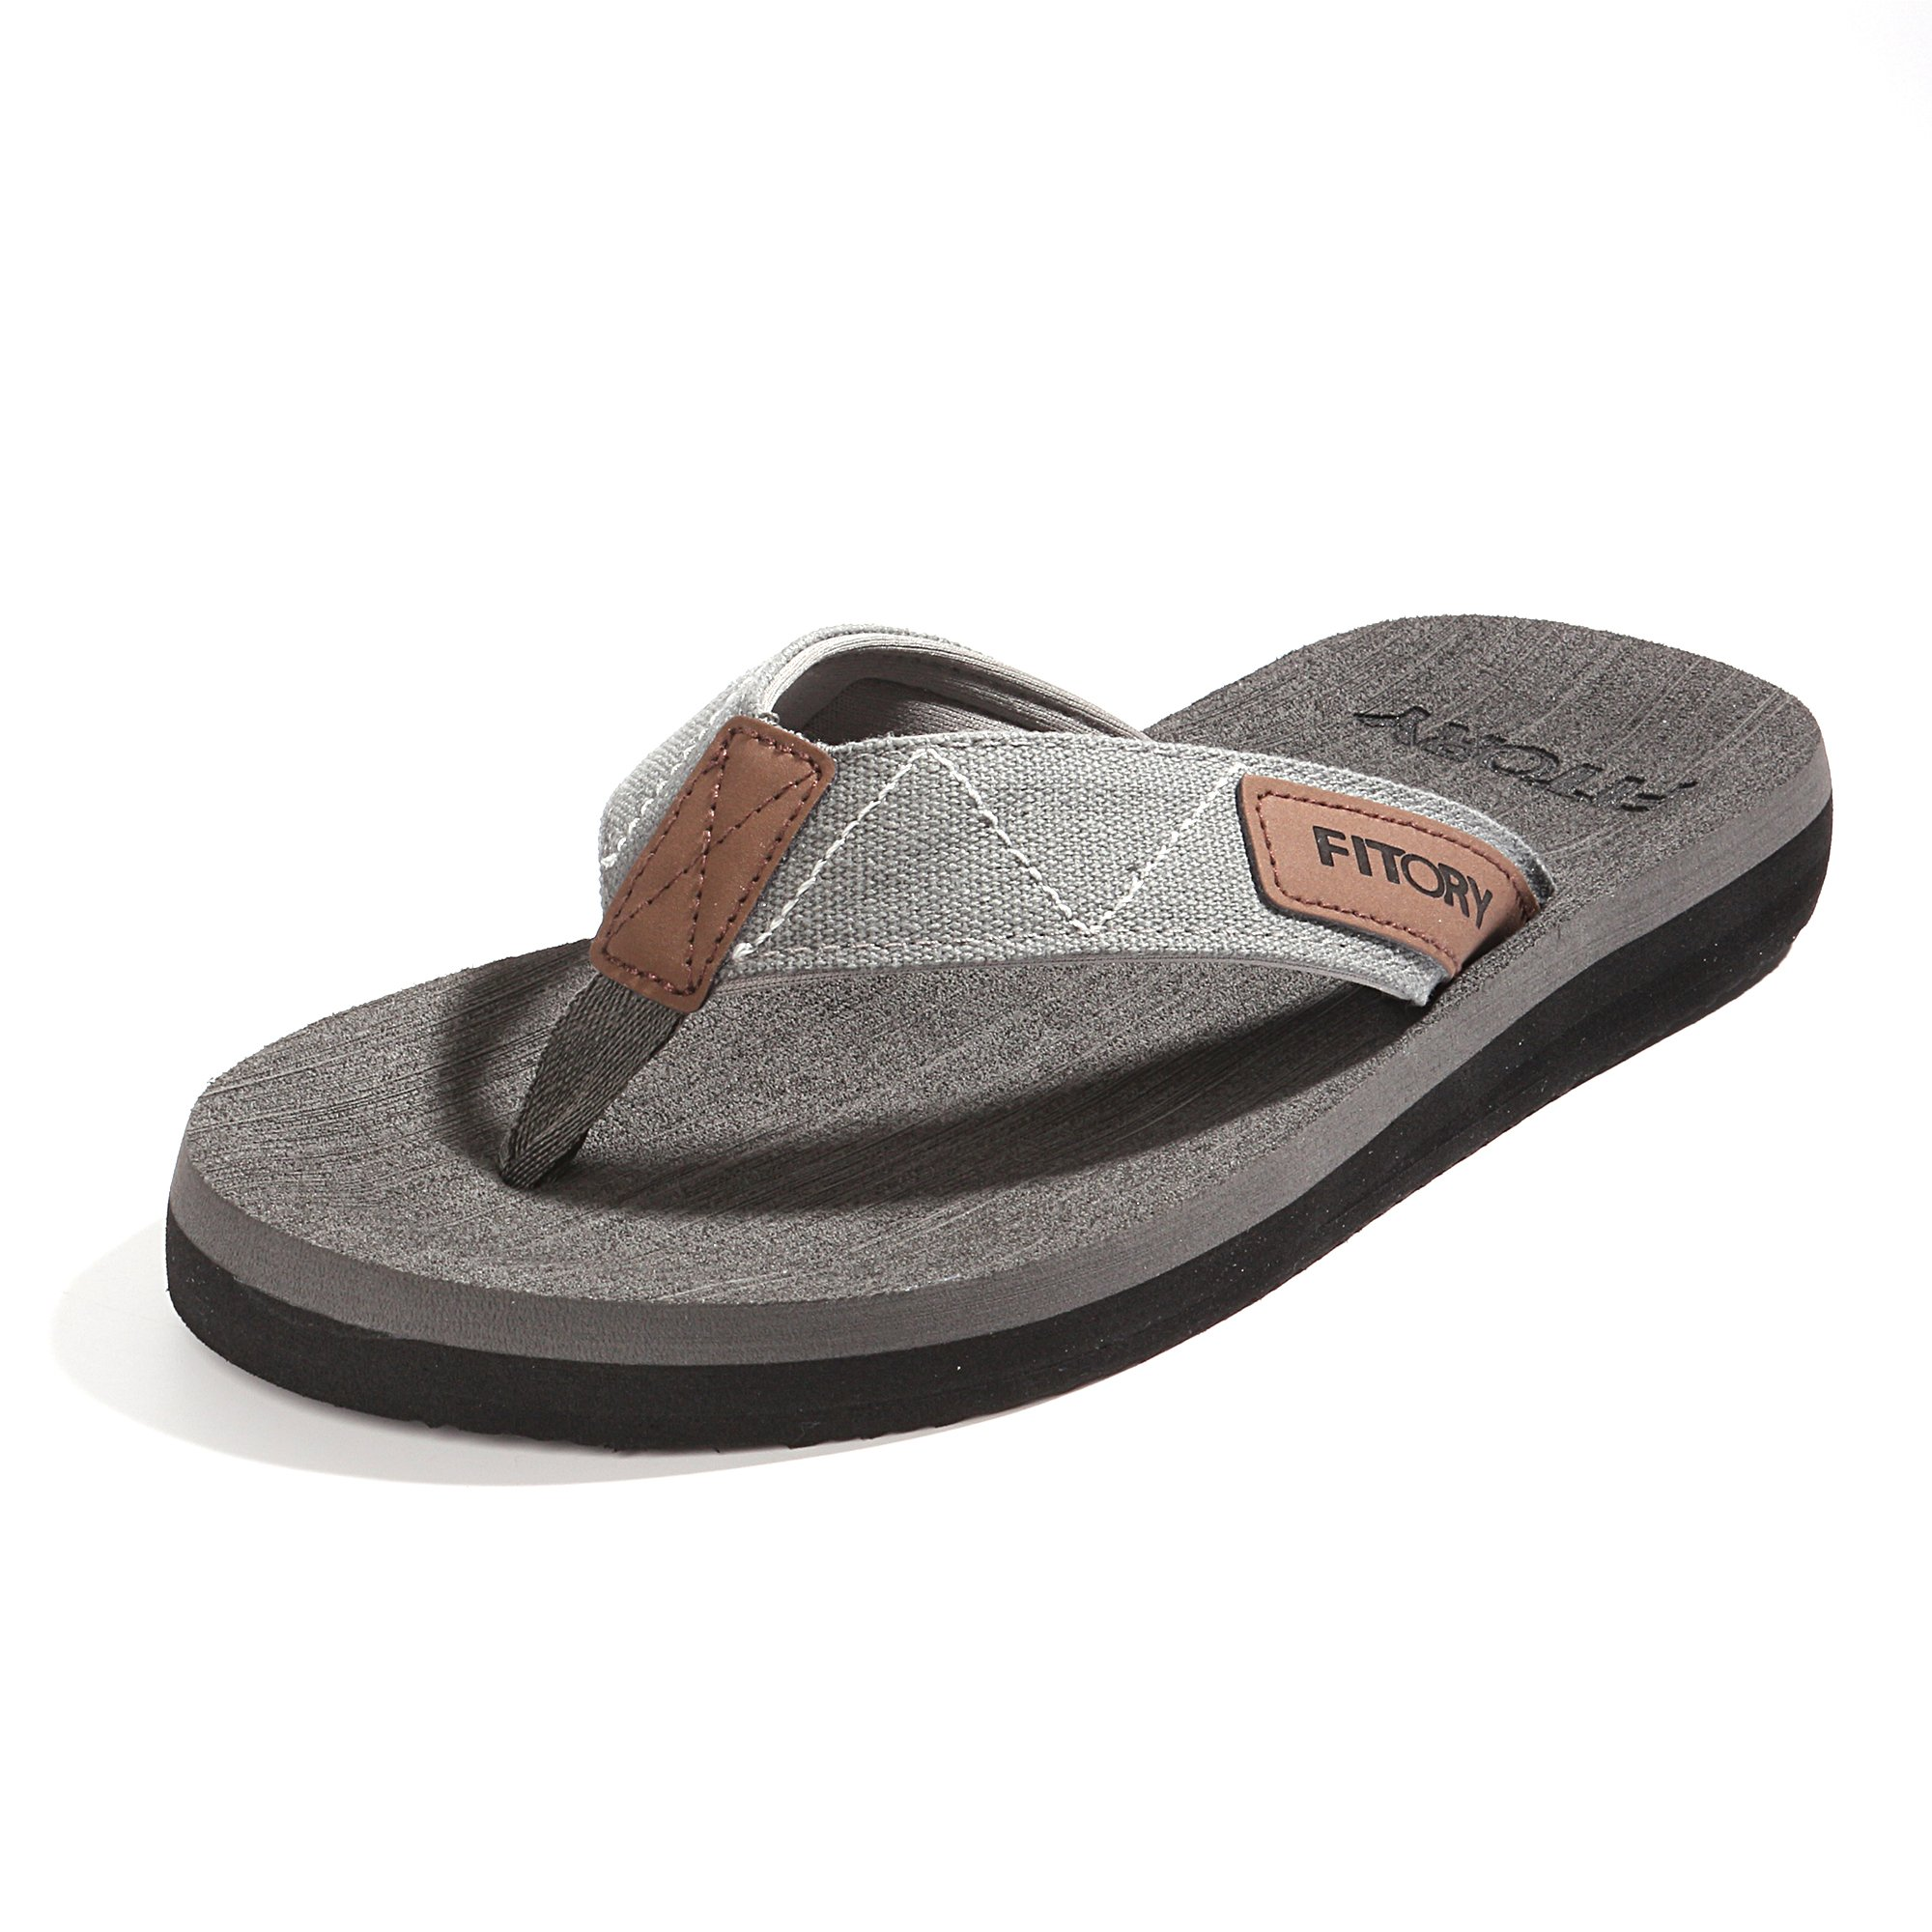 FITORY Men's Flip-Flops Arch Support Thongs Comfort Slippers for Beach Size 7-13 by FITORY